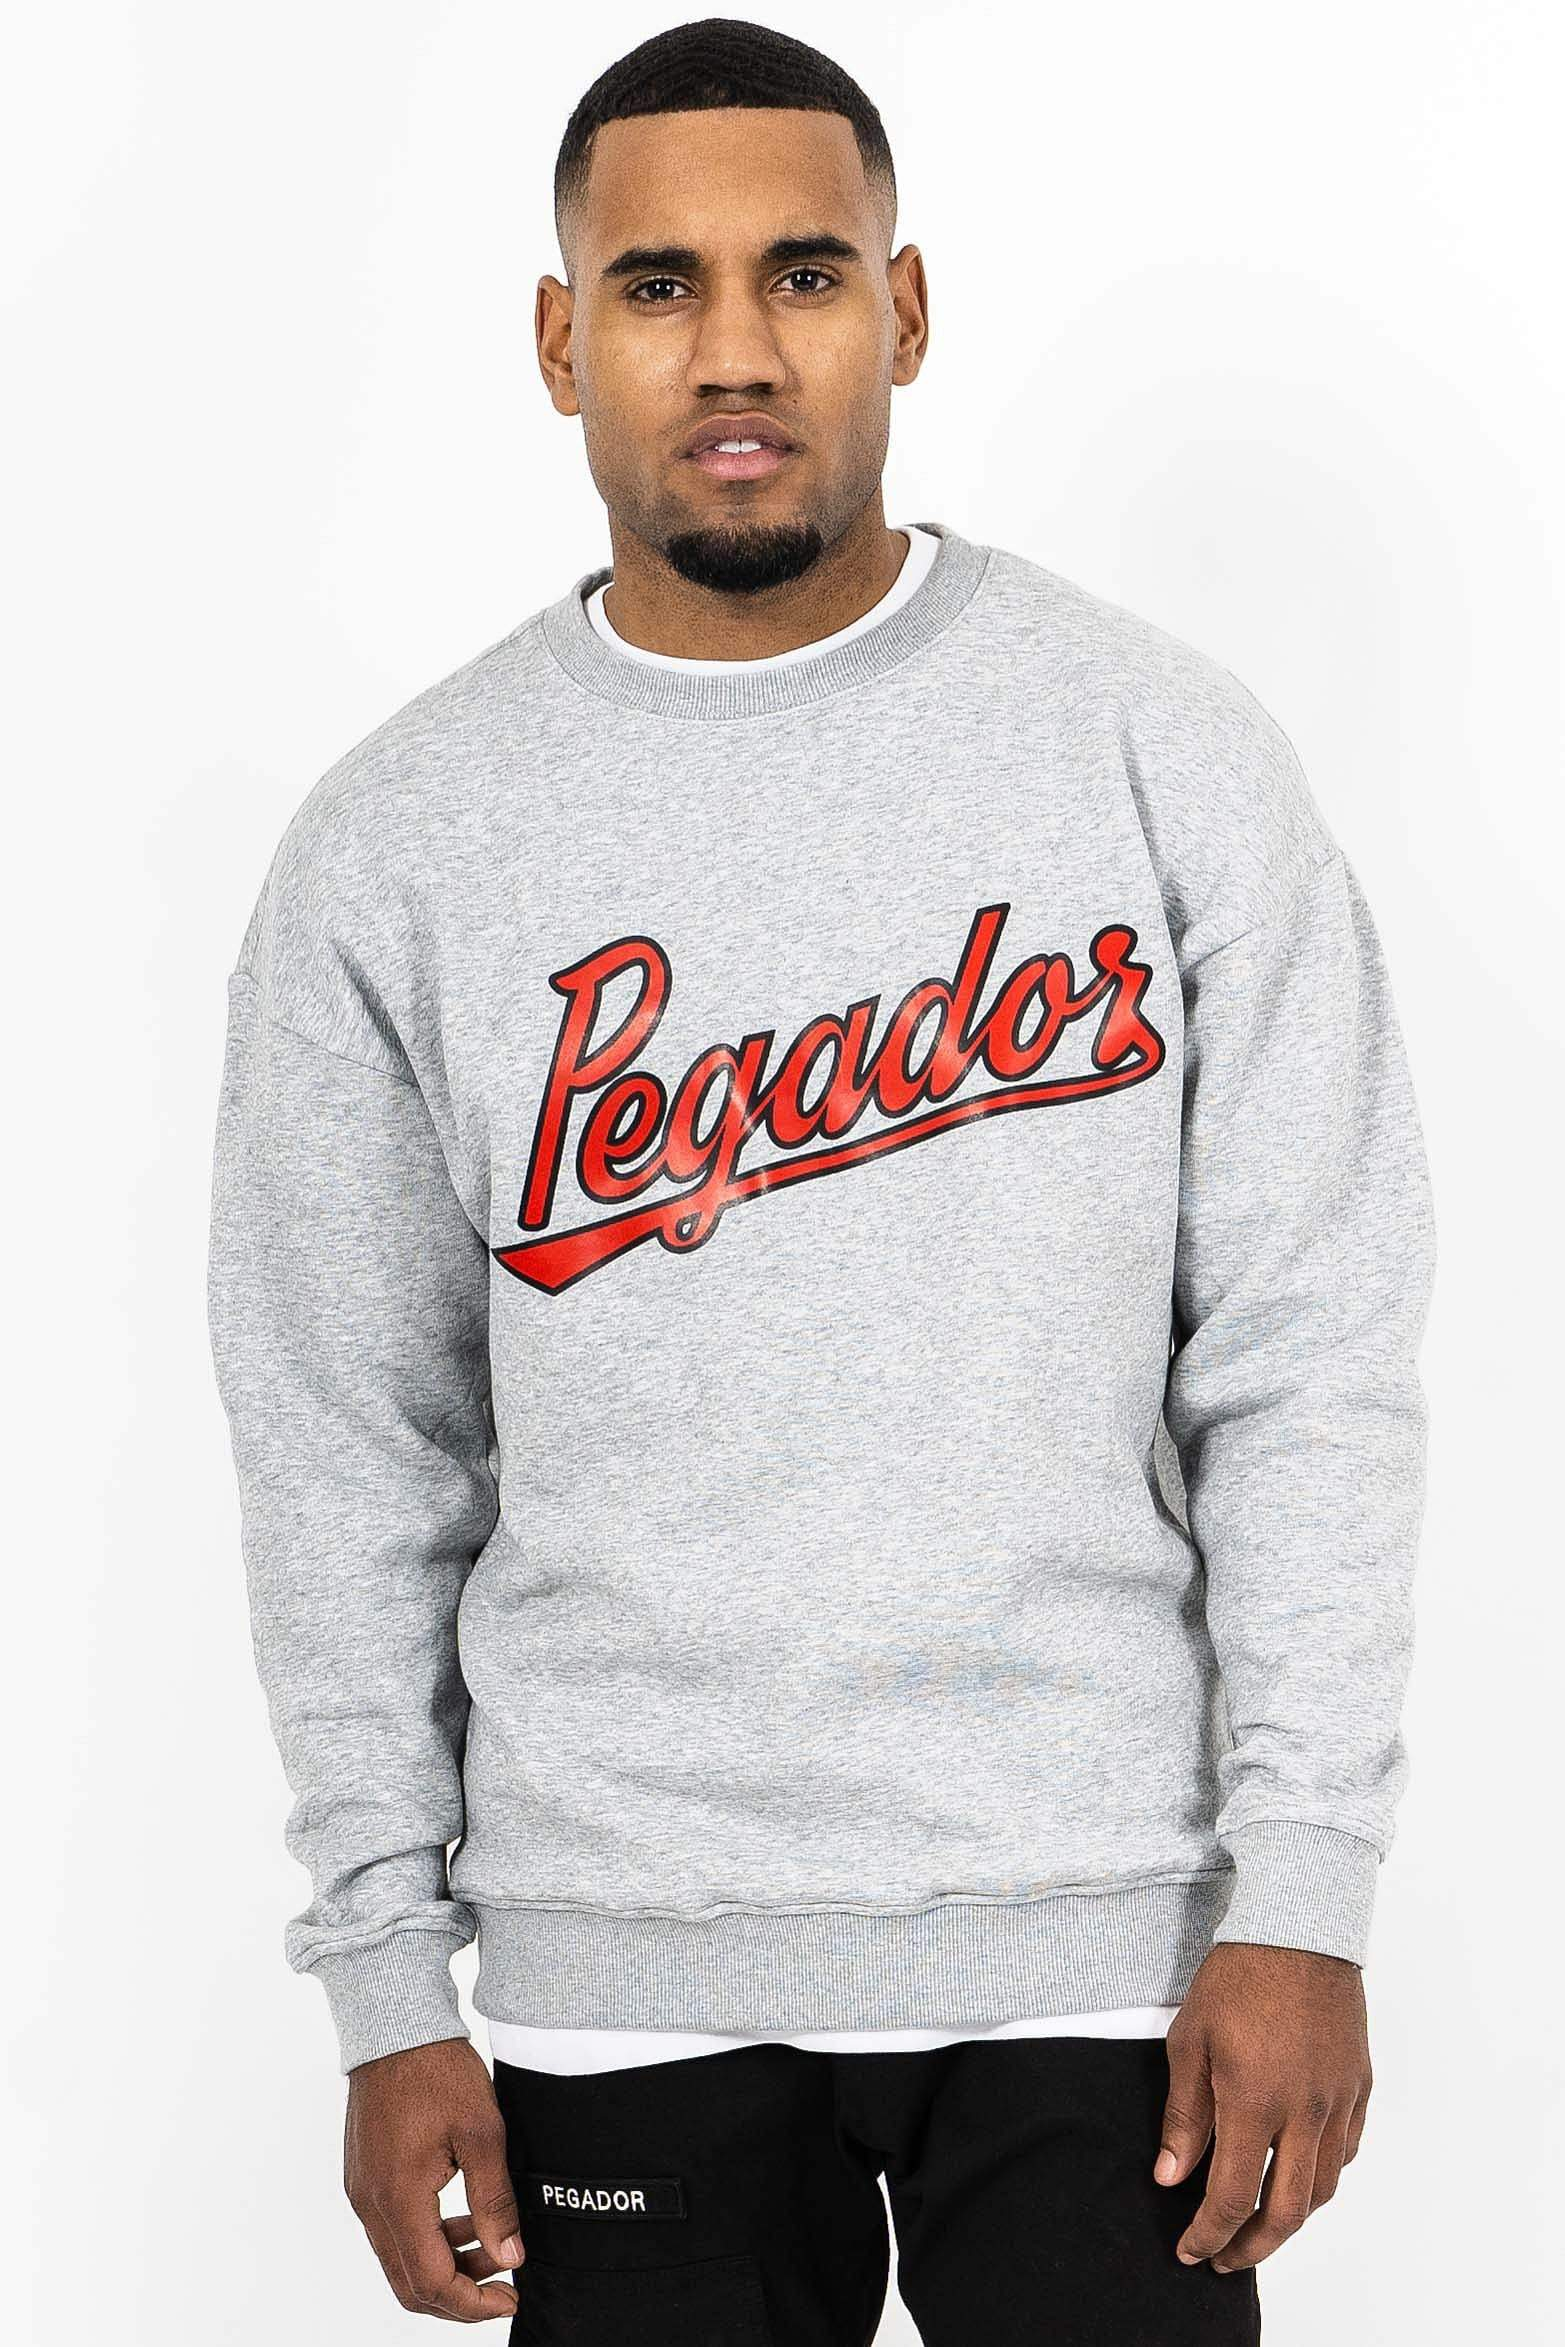 Tyler Oversized Crewneck Grey Melange - PEGADOR - Dominate the Hype